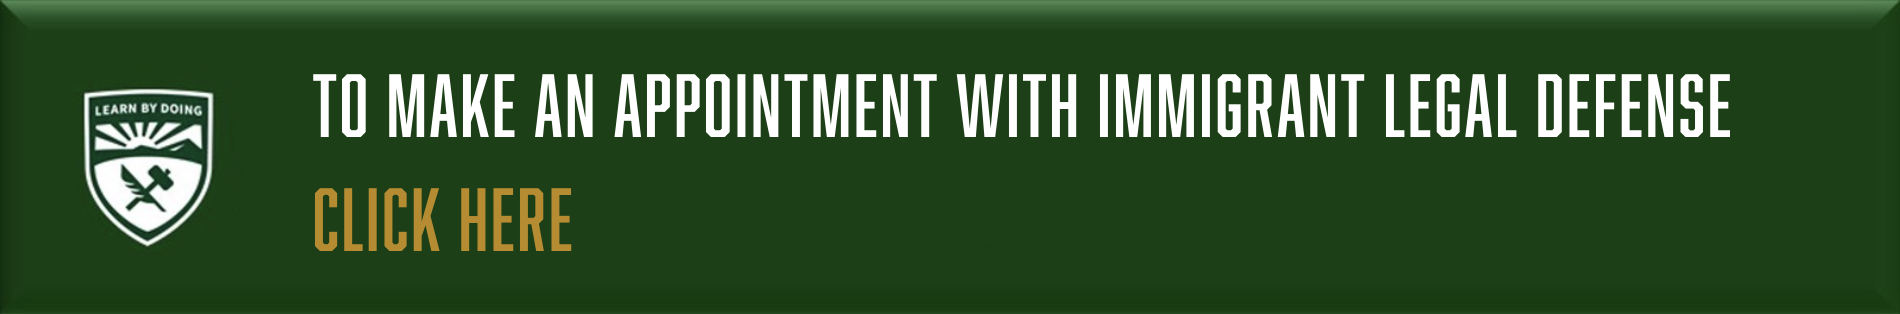 To make an appointment with Immigrant Legal Defense, click here